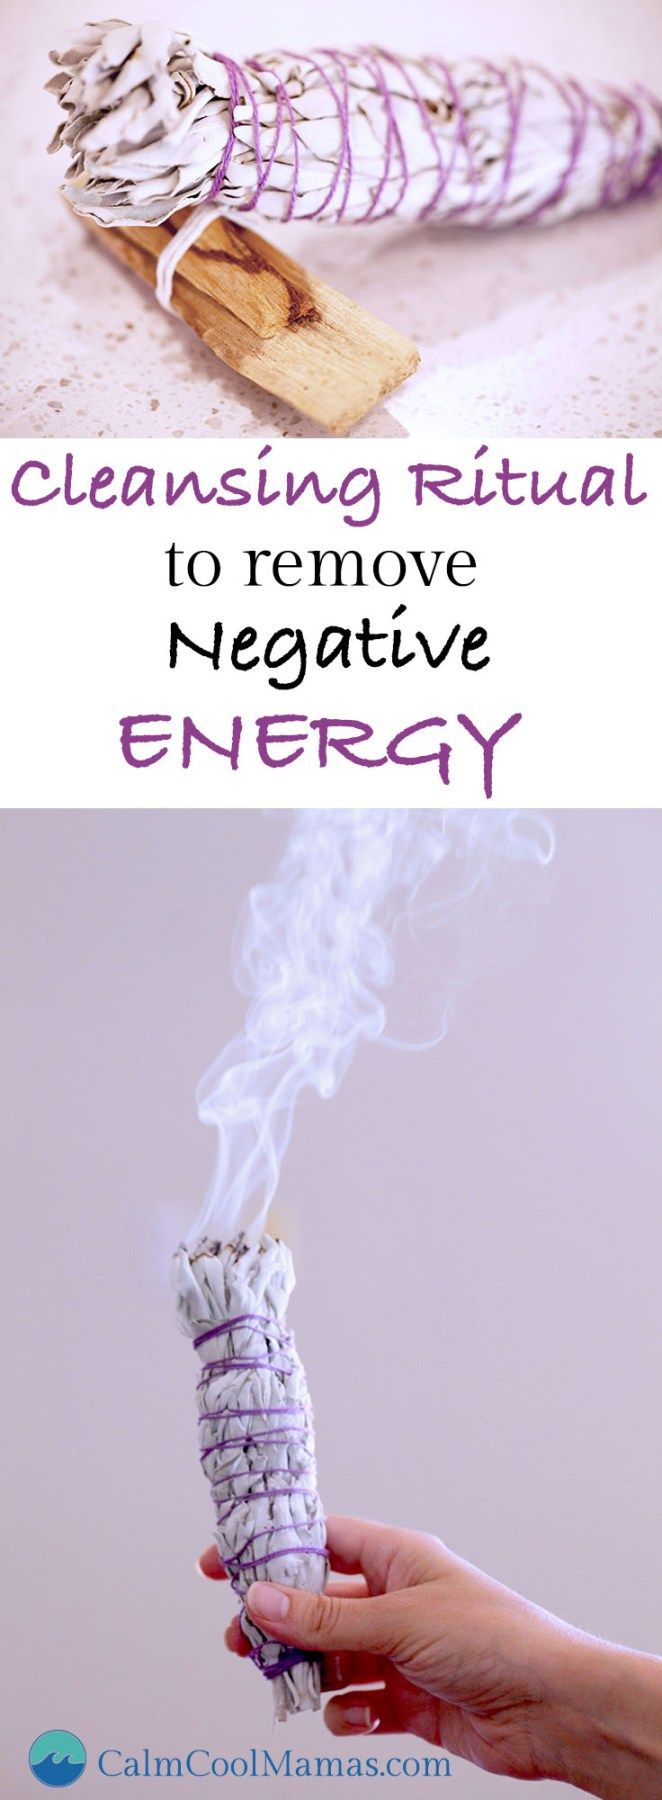 Removing The Negativity From Your Environment   Burning ...